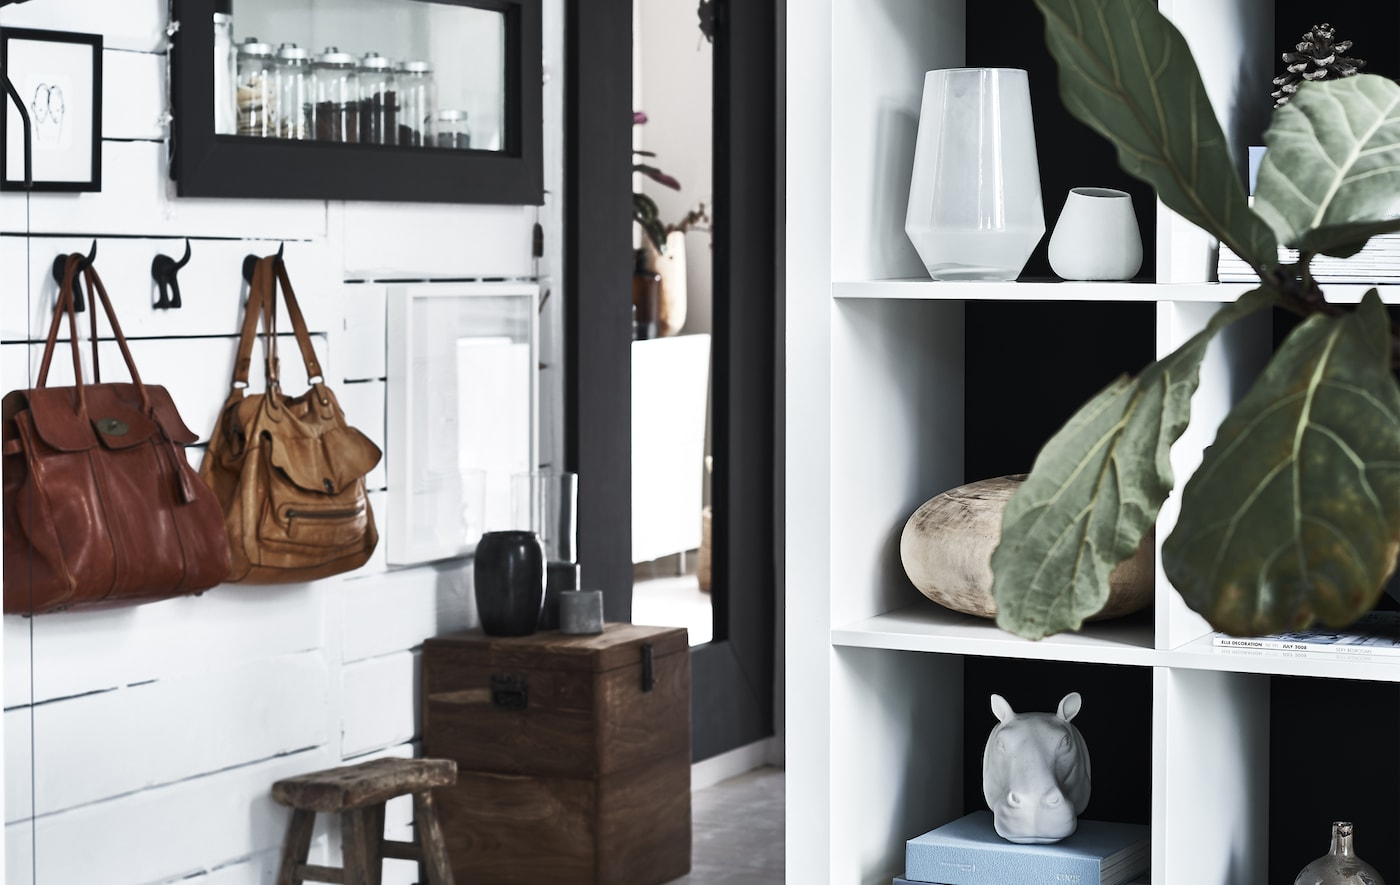 A hallway decorated with hooks and handbags, mirrors and a white shelving unit displaying everyday objects.